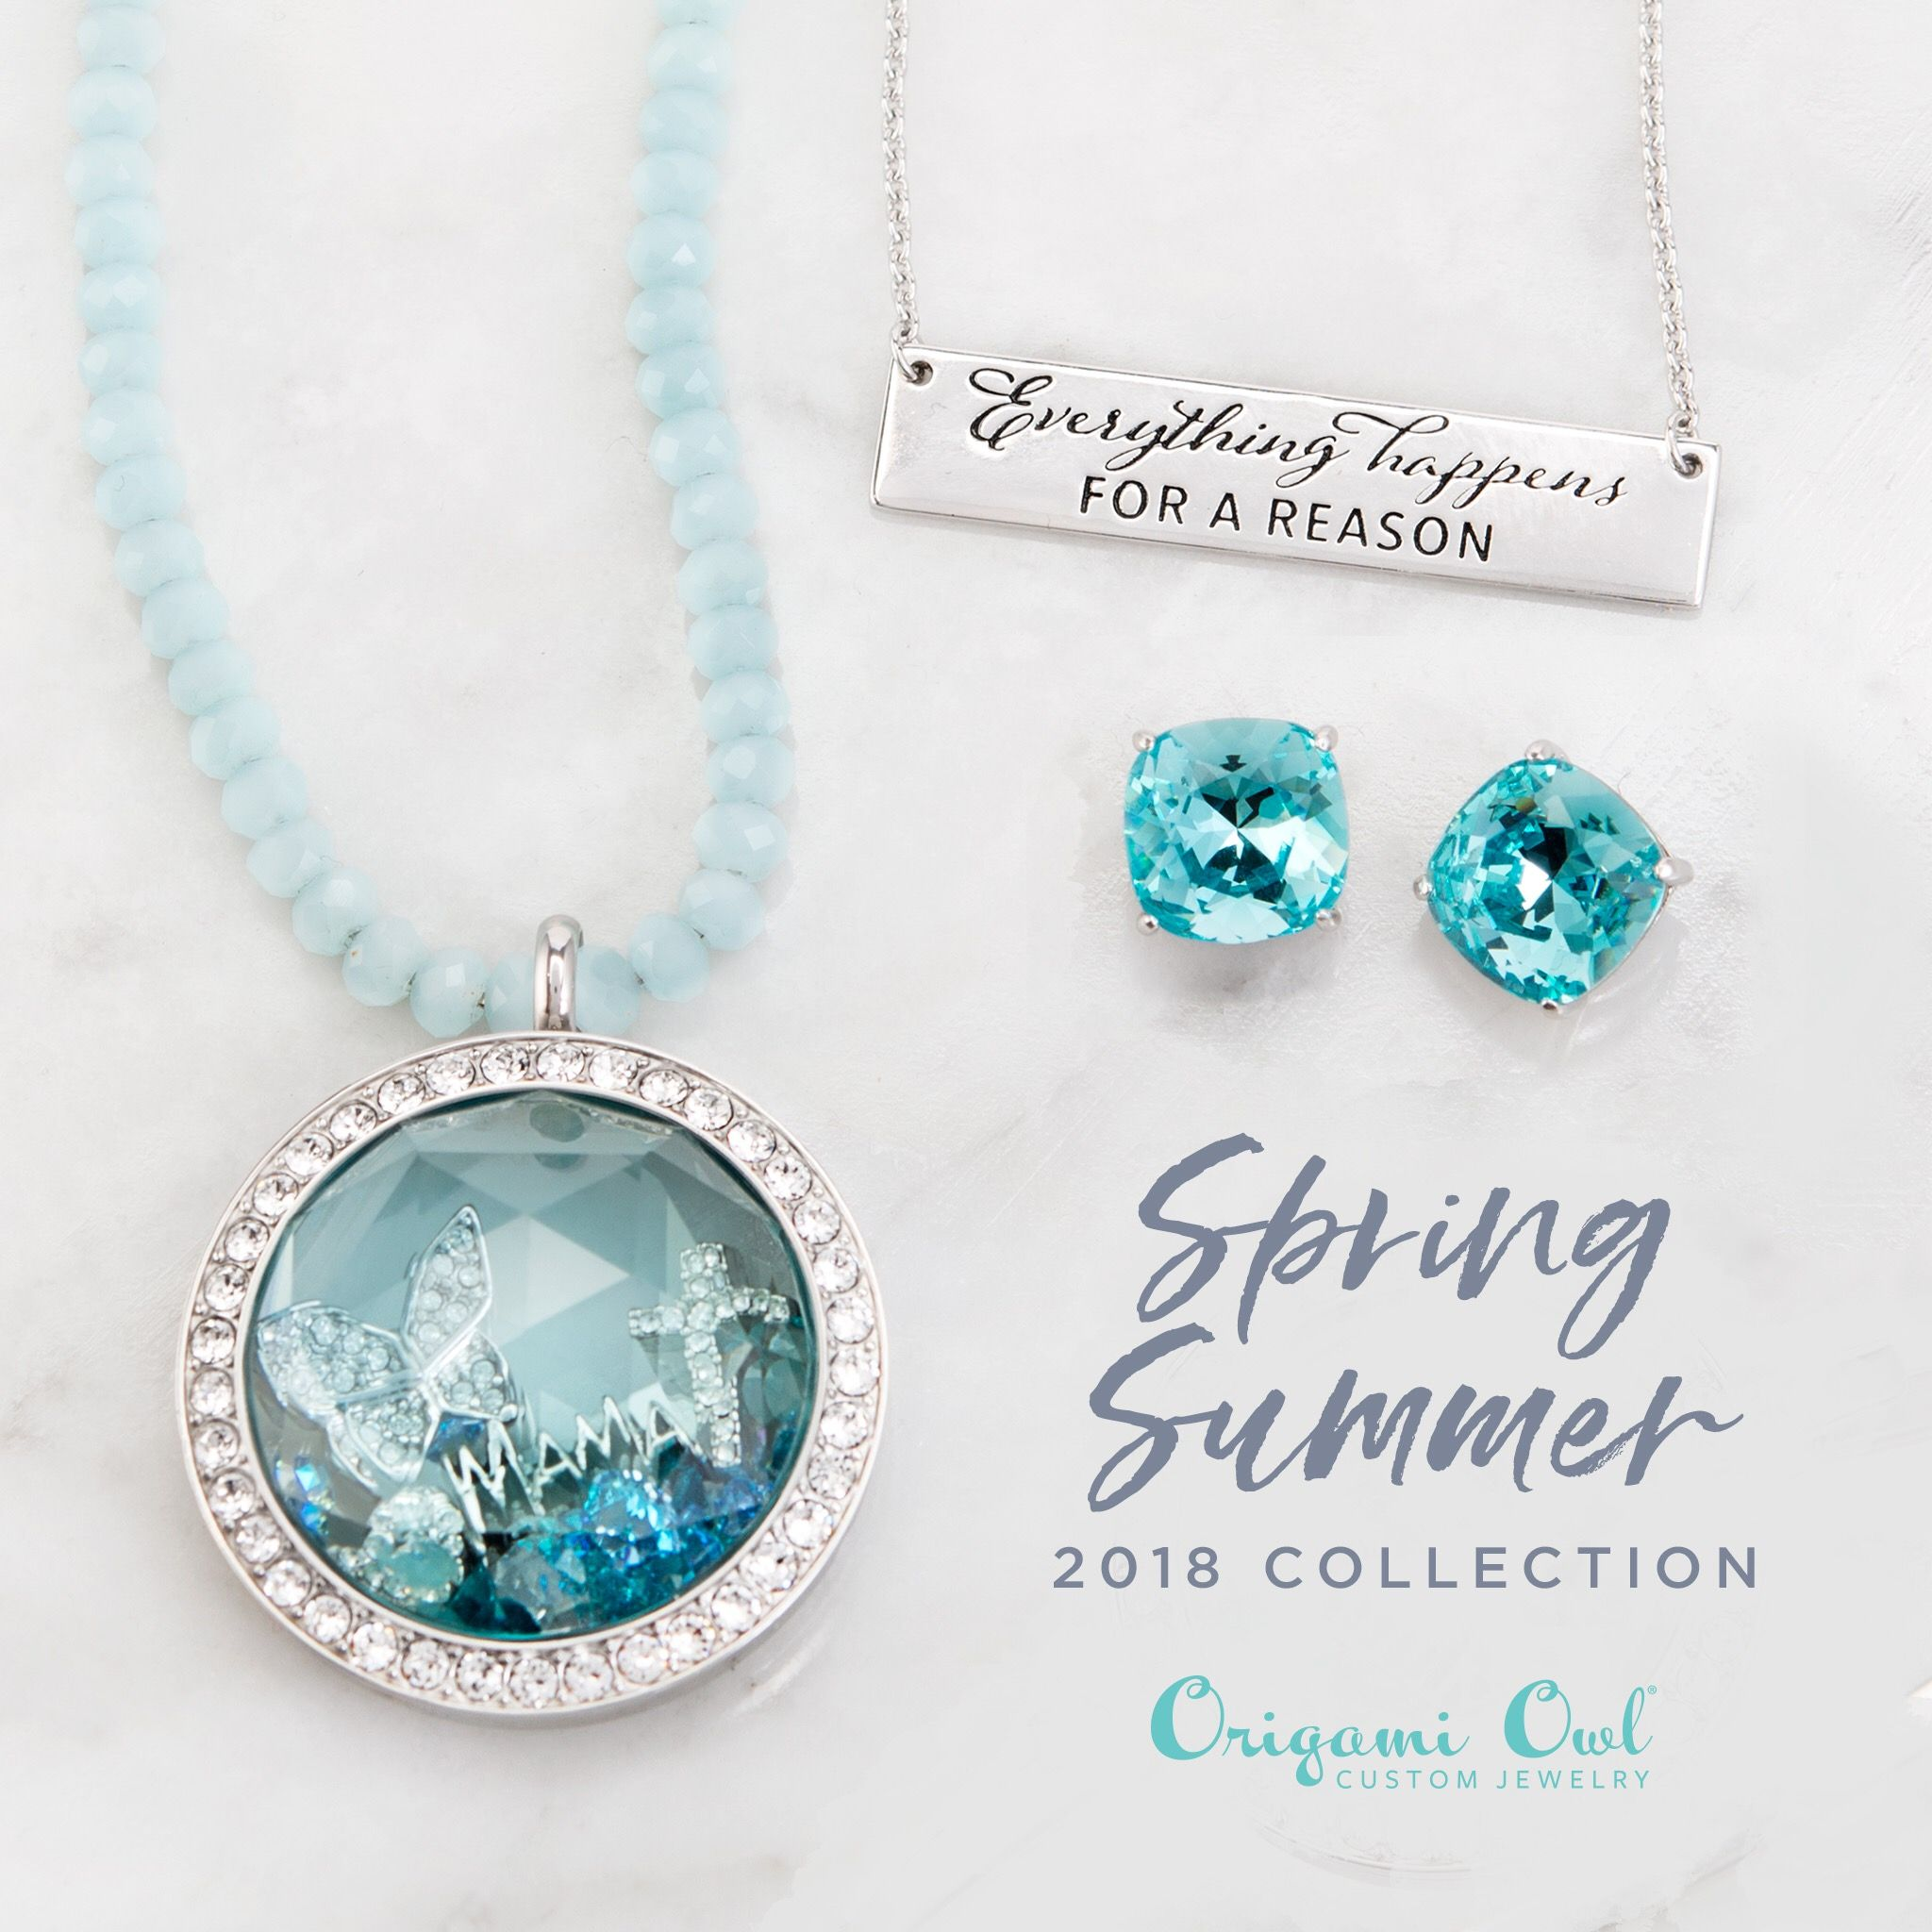 The Origami Owl Custom Jewelry Spring 2019 Collection - Direct ... | 2048x2048